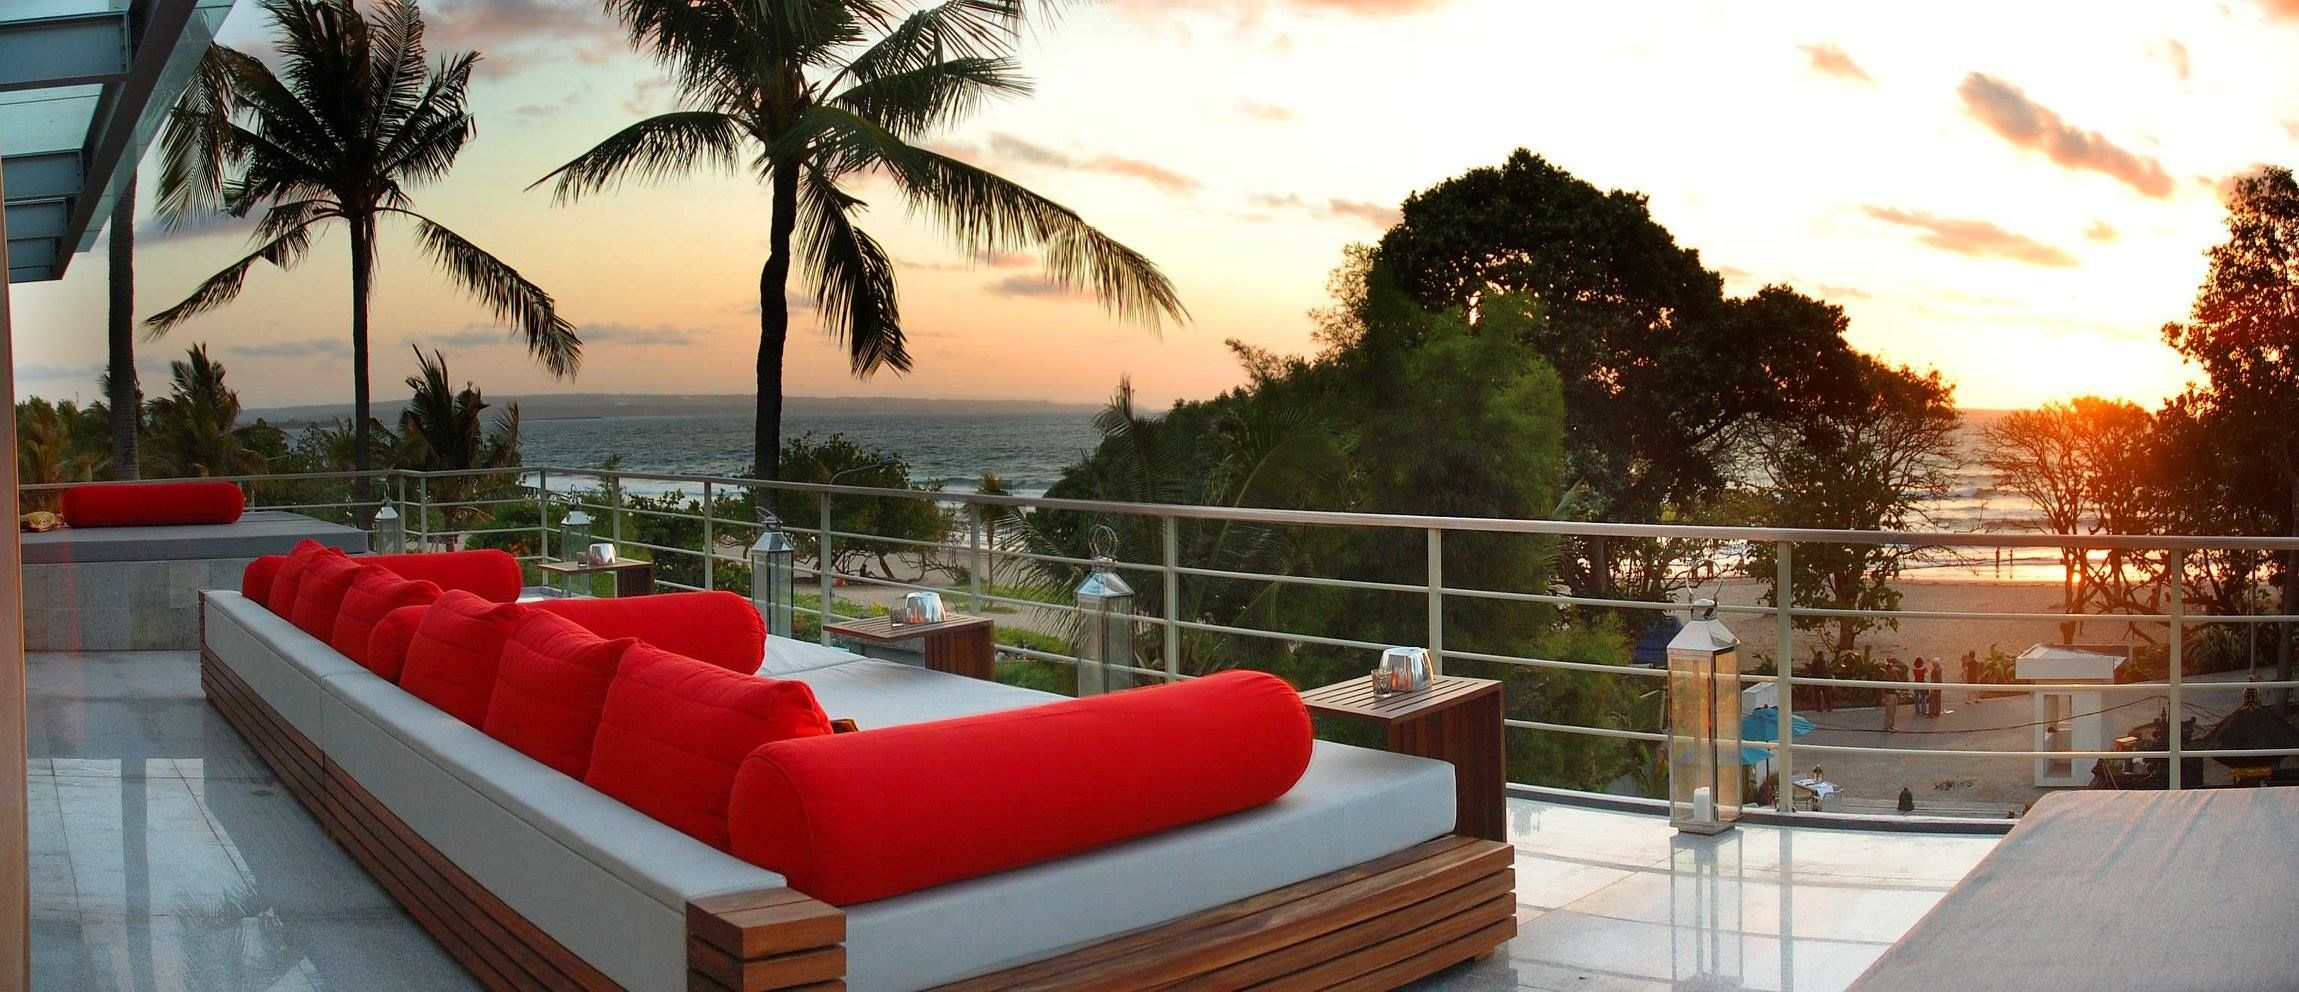 Looking for a perfect sunset spot? The TAO Beach Houe is